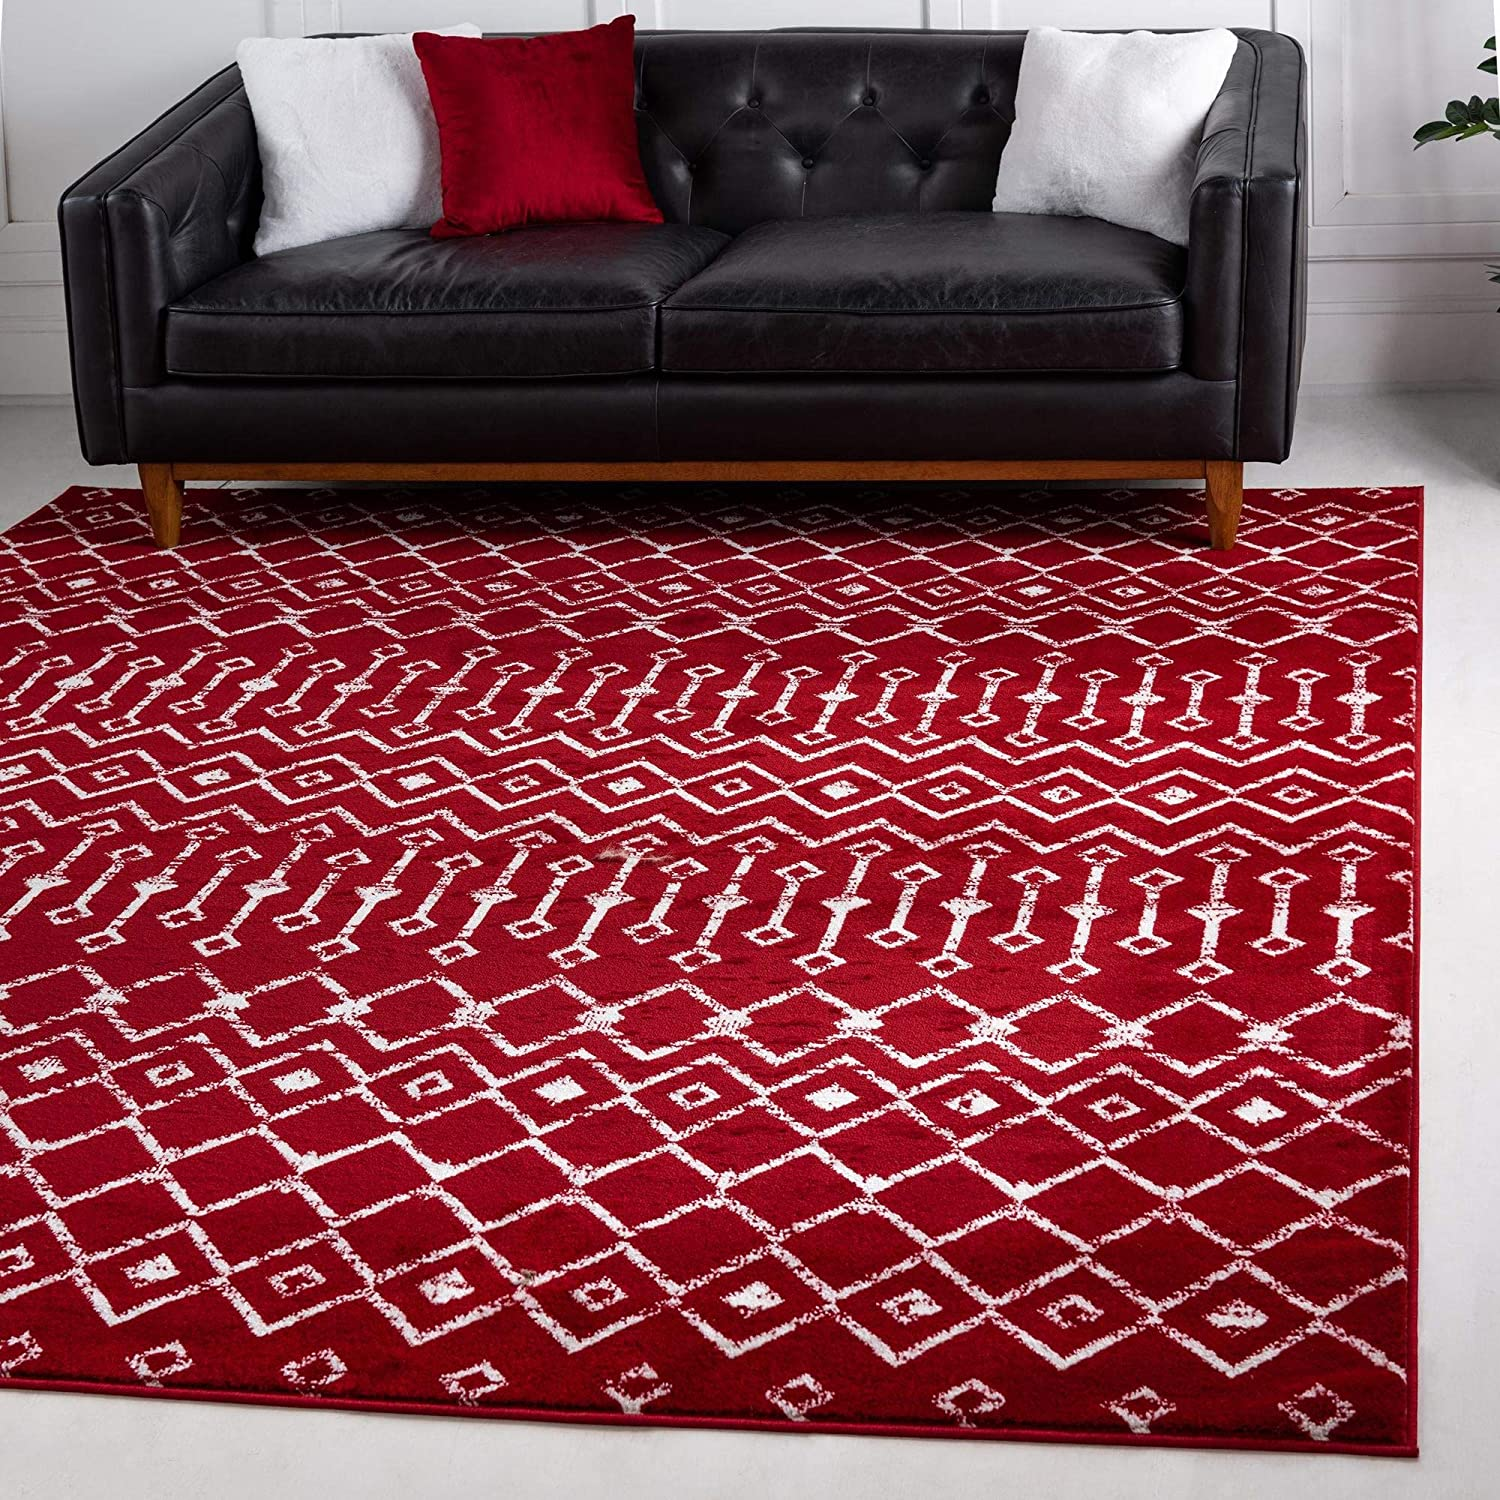 Rugs.com Geometric Kasbah Trellis Collection Rug – 6' Square Red Low Pile Rug Perfect for Living Rooms, Kitchens, Entryways